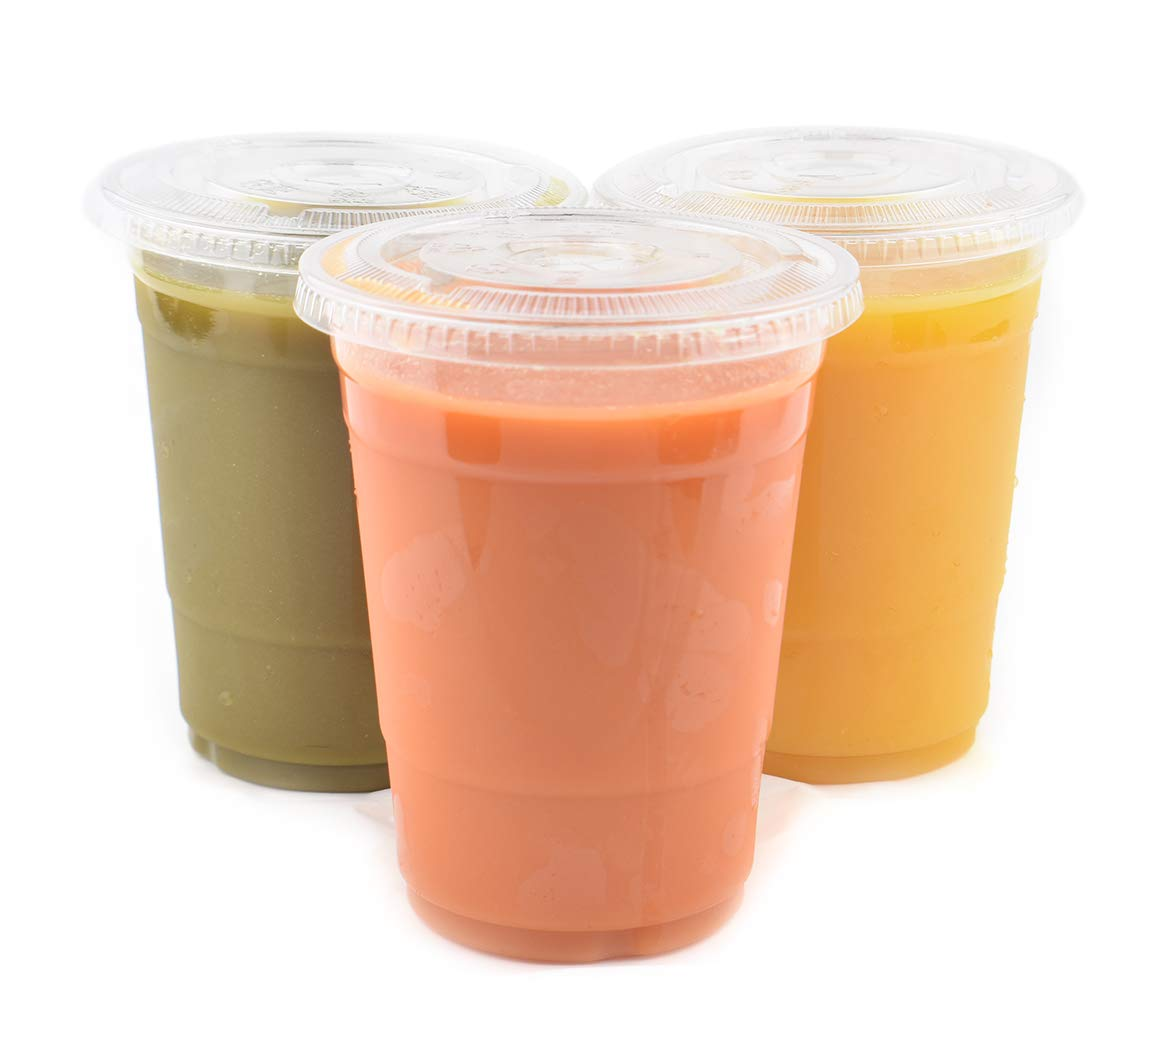 [1000 SETS] Plastic Disposable Cups with Lids - Premium 16 oz (ounces) Crystal Clear PET for Cold Drinks Iced Coffee Tea Juices Smoothies Slush Soda Cocktails Beer Kids Safe (16oz Cups + Flat Lids)